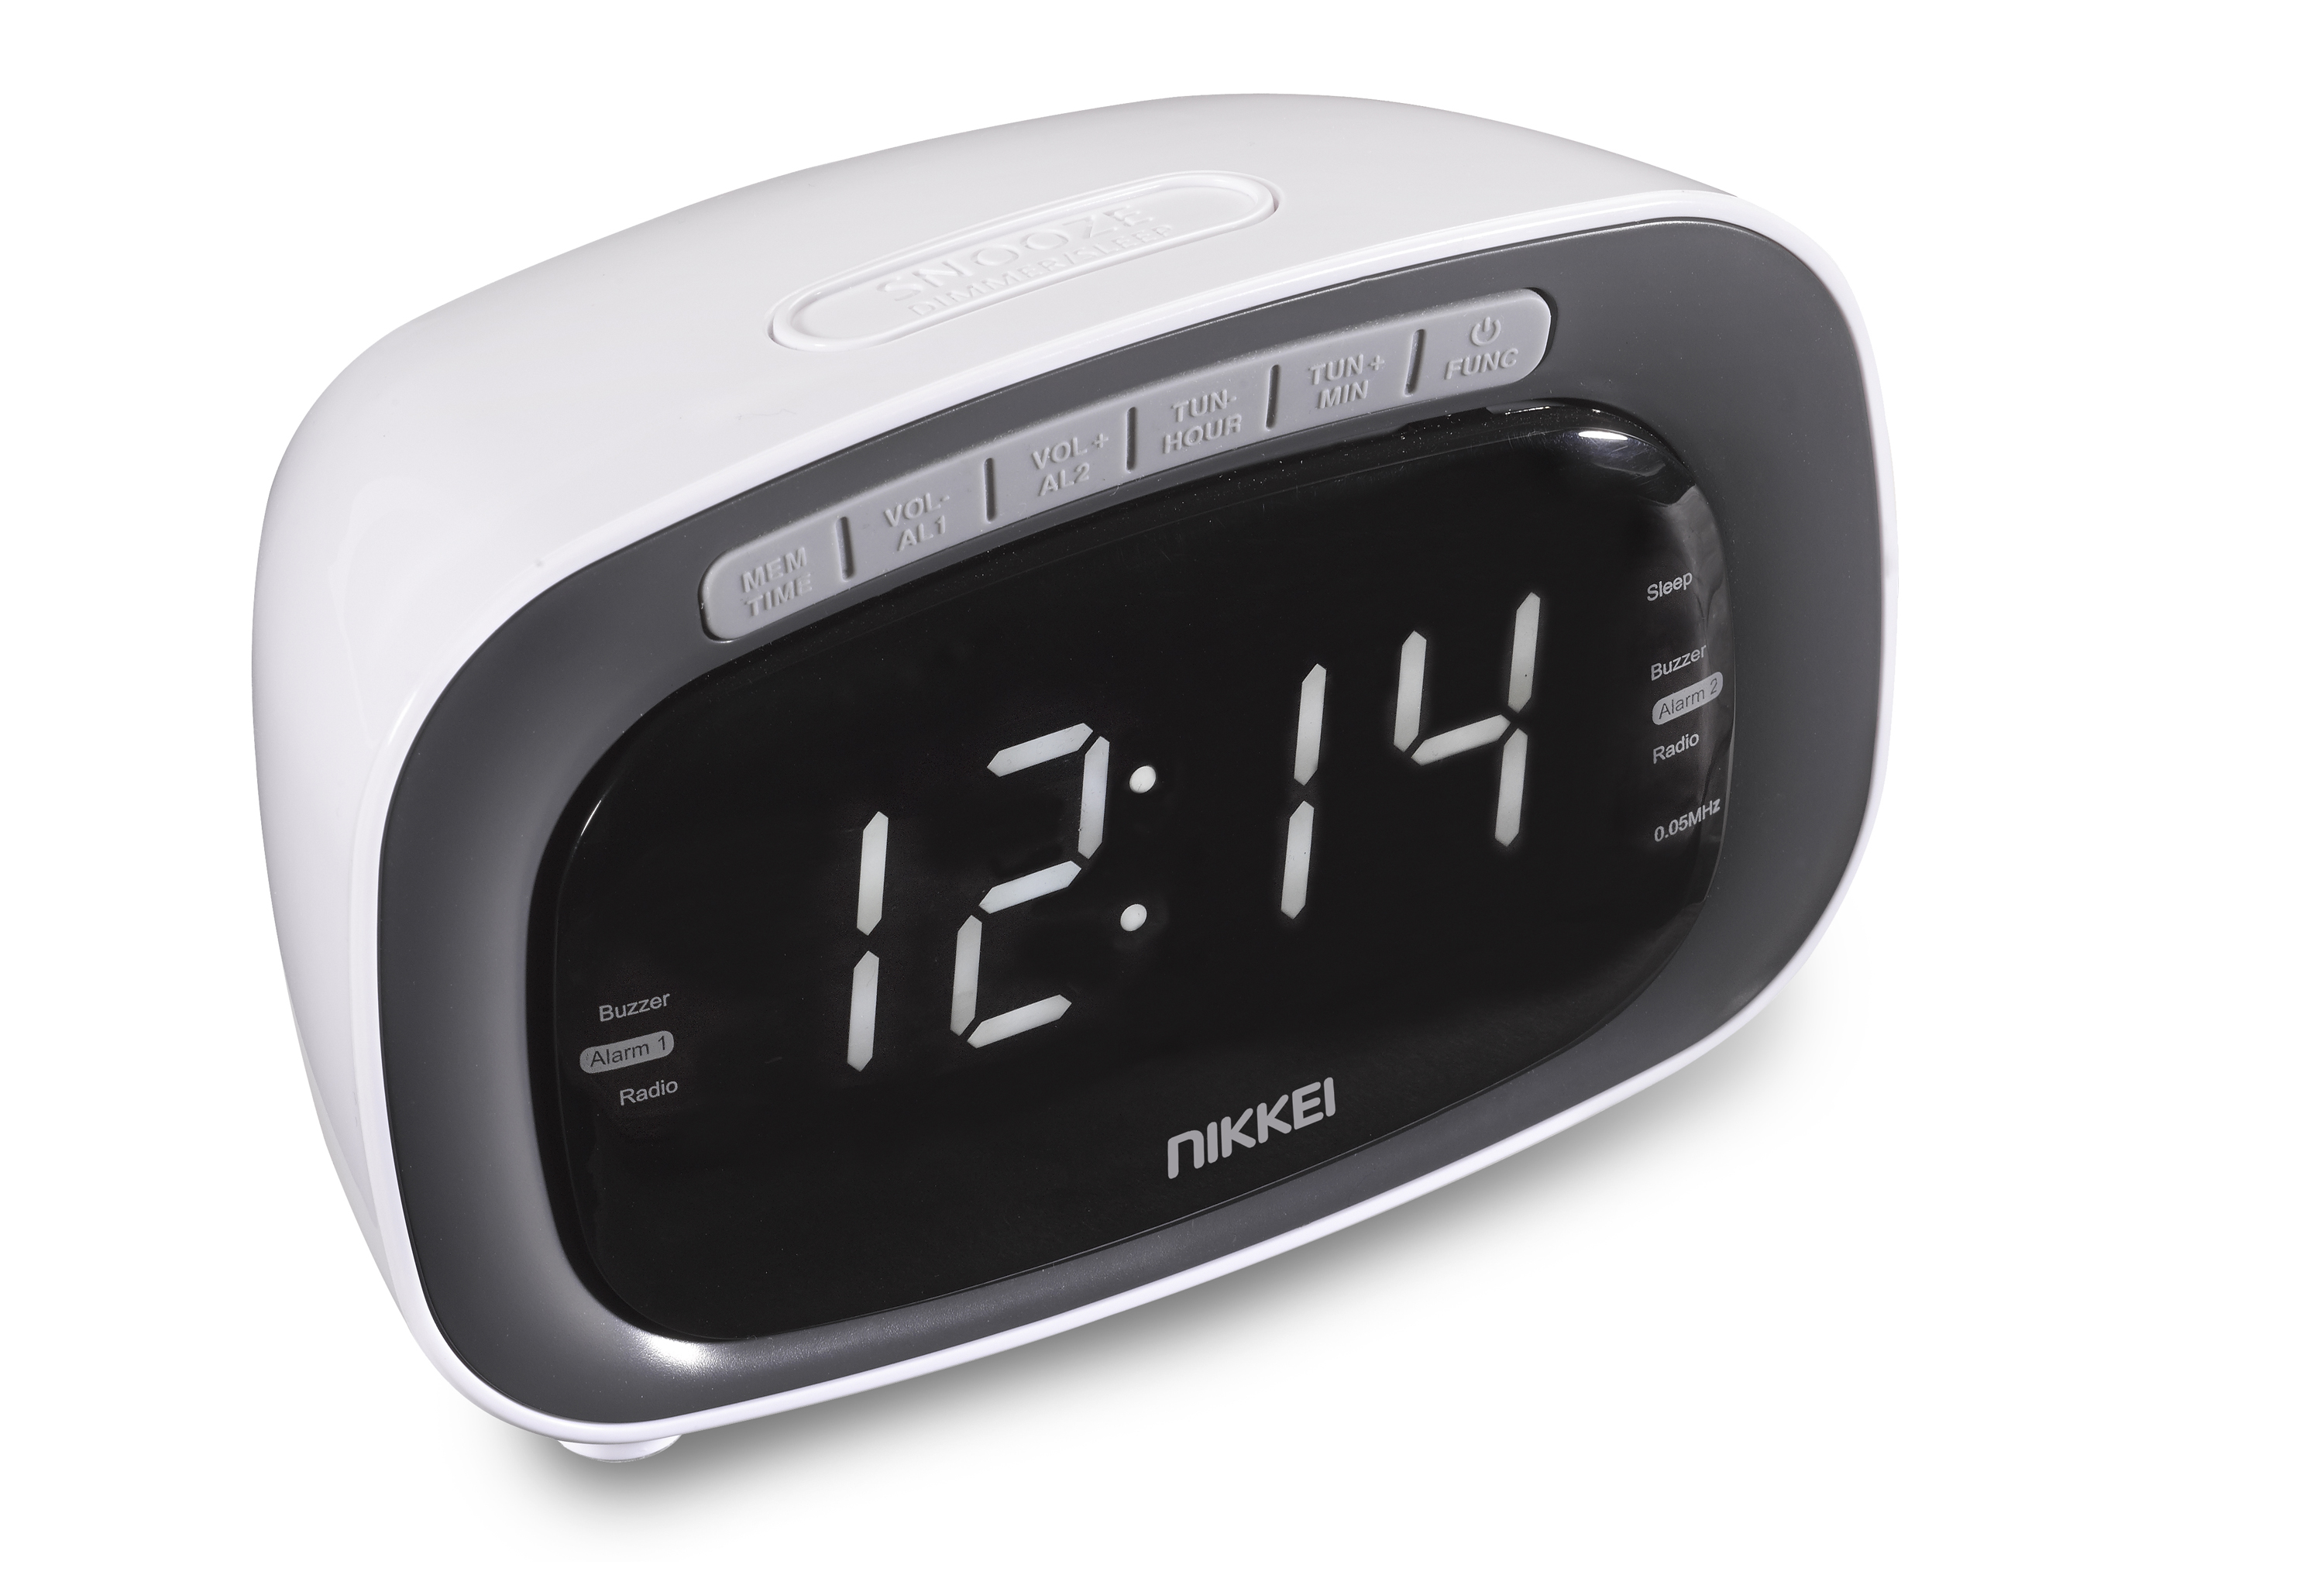 Nikkei NR200WE clockradio LED displ. dig. FM, 20 presets, snooze, white